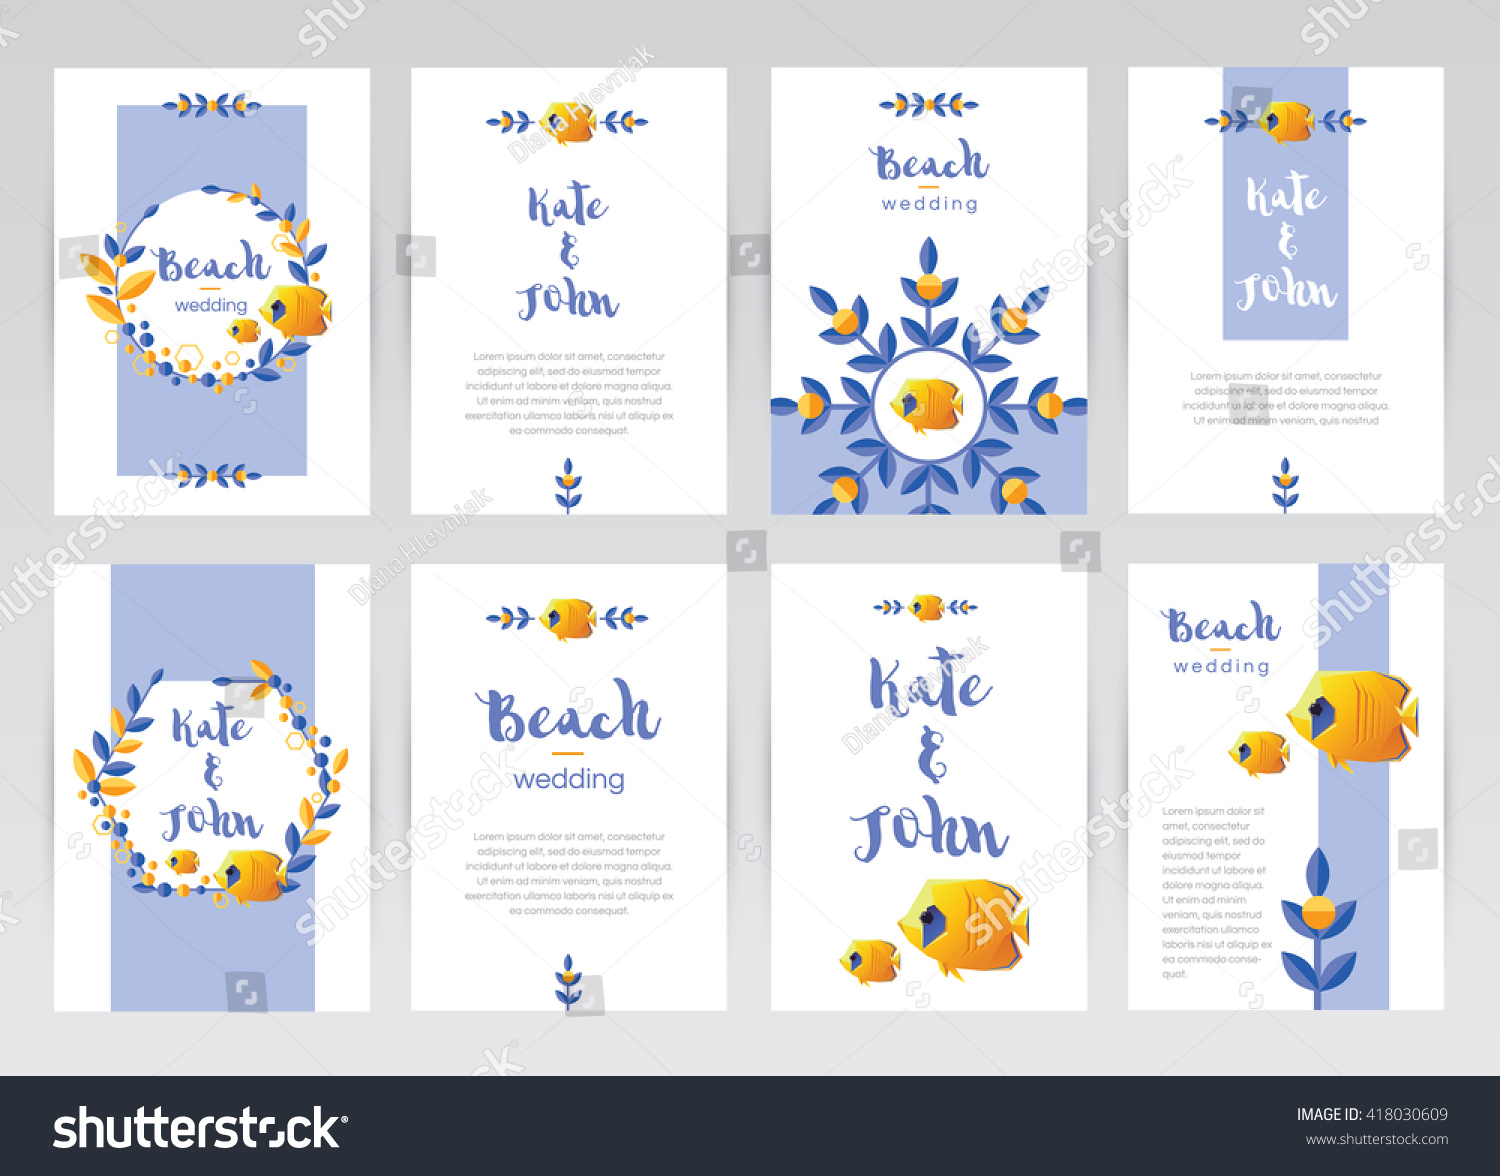 Awesome Blue And Yellow Wedding Theme Mold - The Wedding Ideas ...